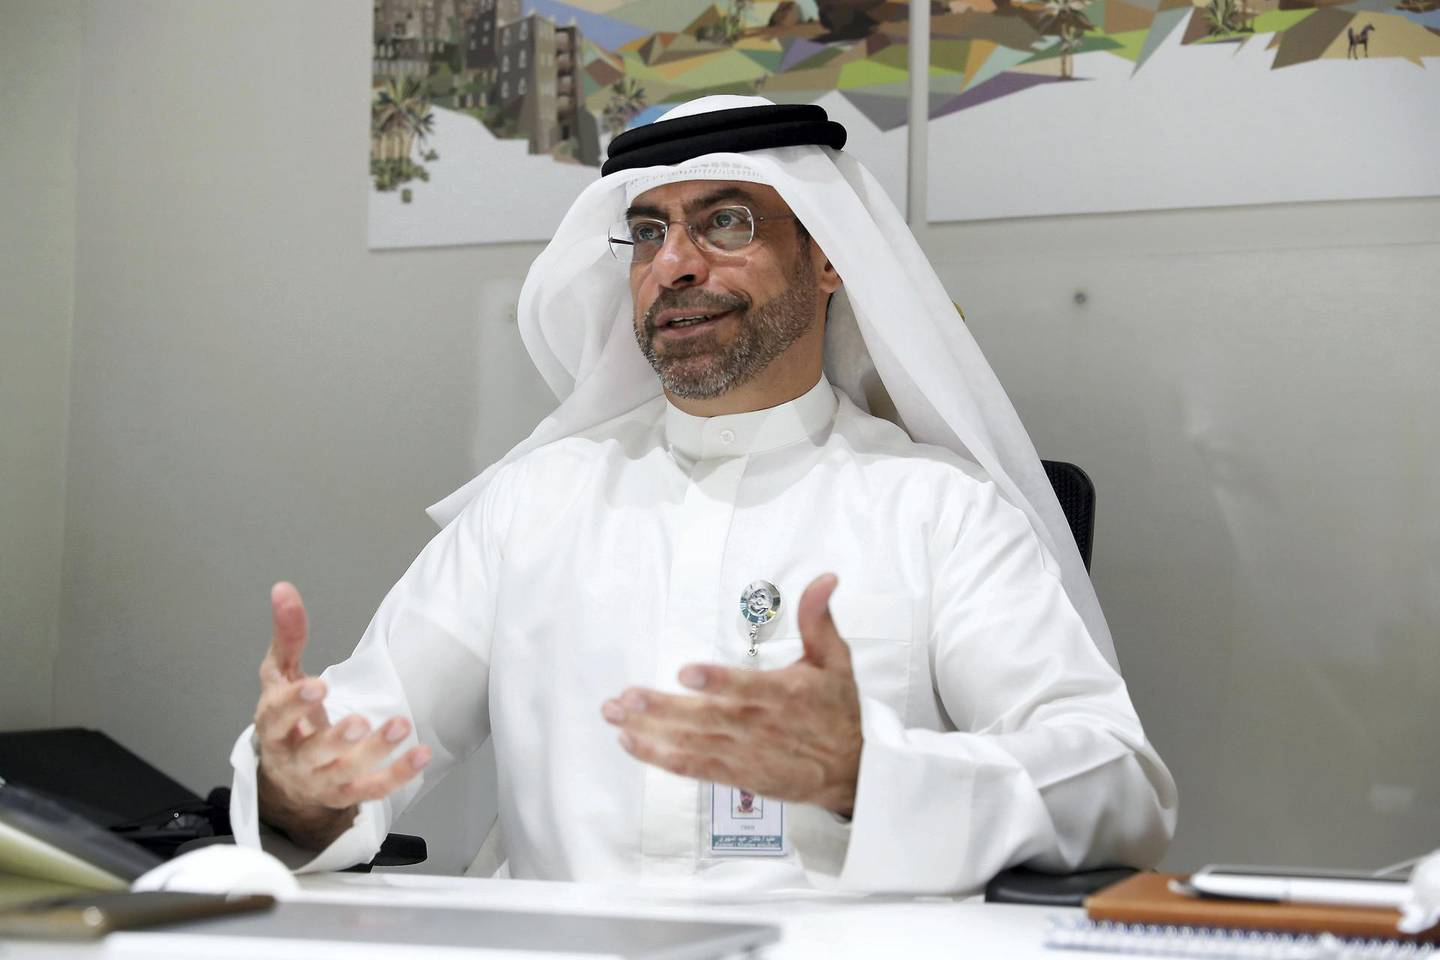 Col Khalfan Al Jallaf, head of Environmental Crimes Division at Dubai police during the interview at his office in Dubai Police HQ on June 29,2021 in Dubai. Pawan Singh/The National. Story by Salam